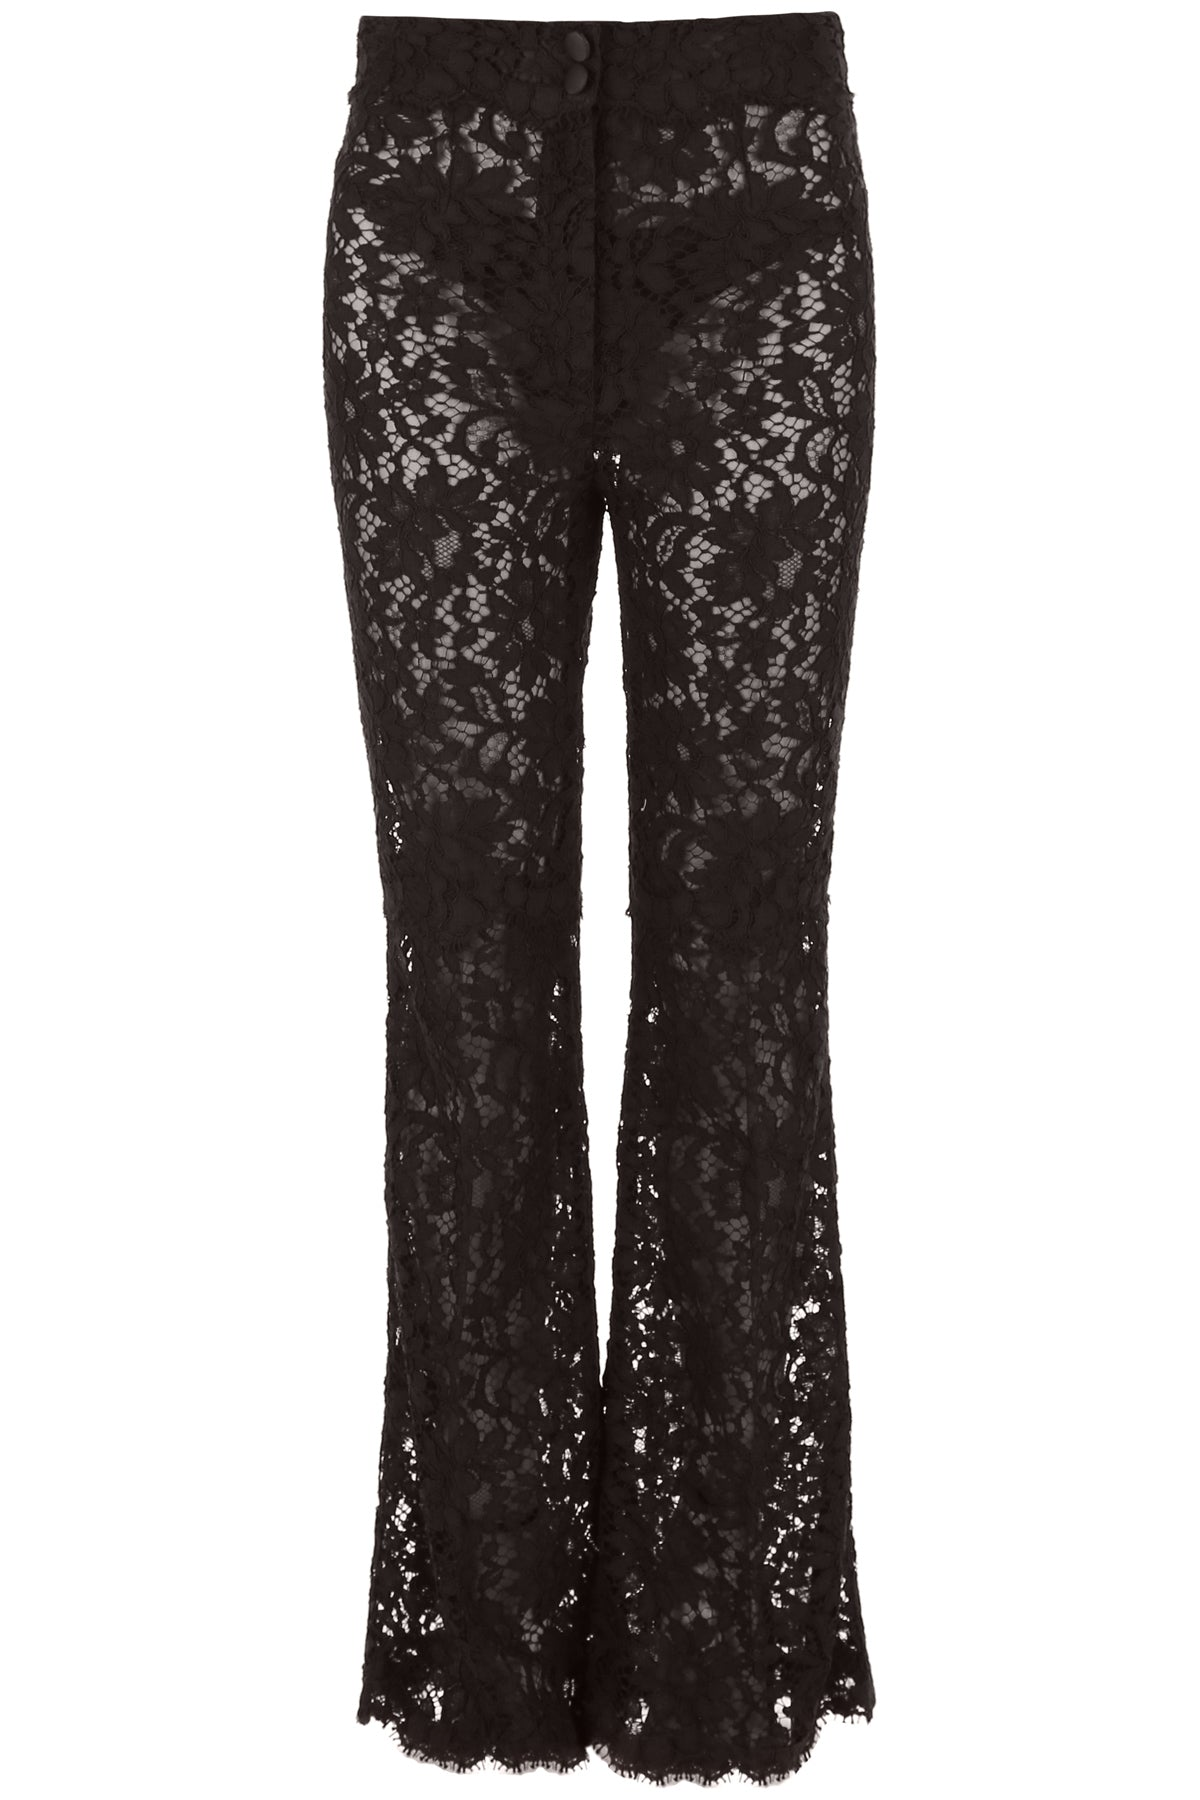 DOLCE & GABBANA LACE FLARED PANTS